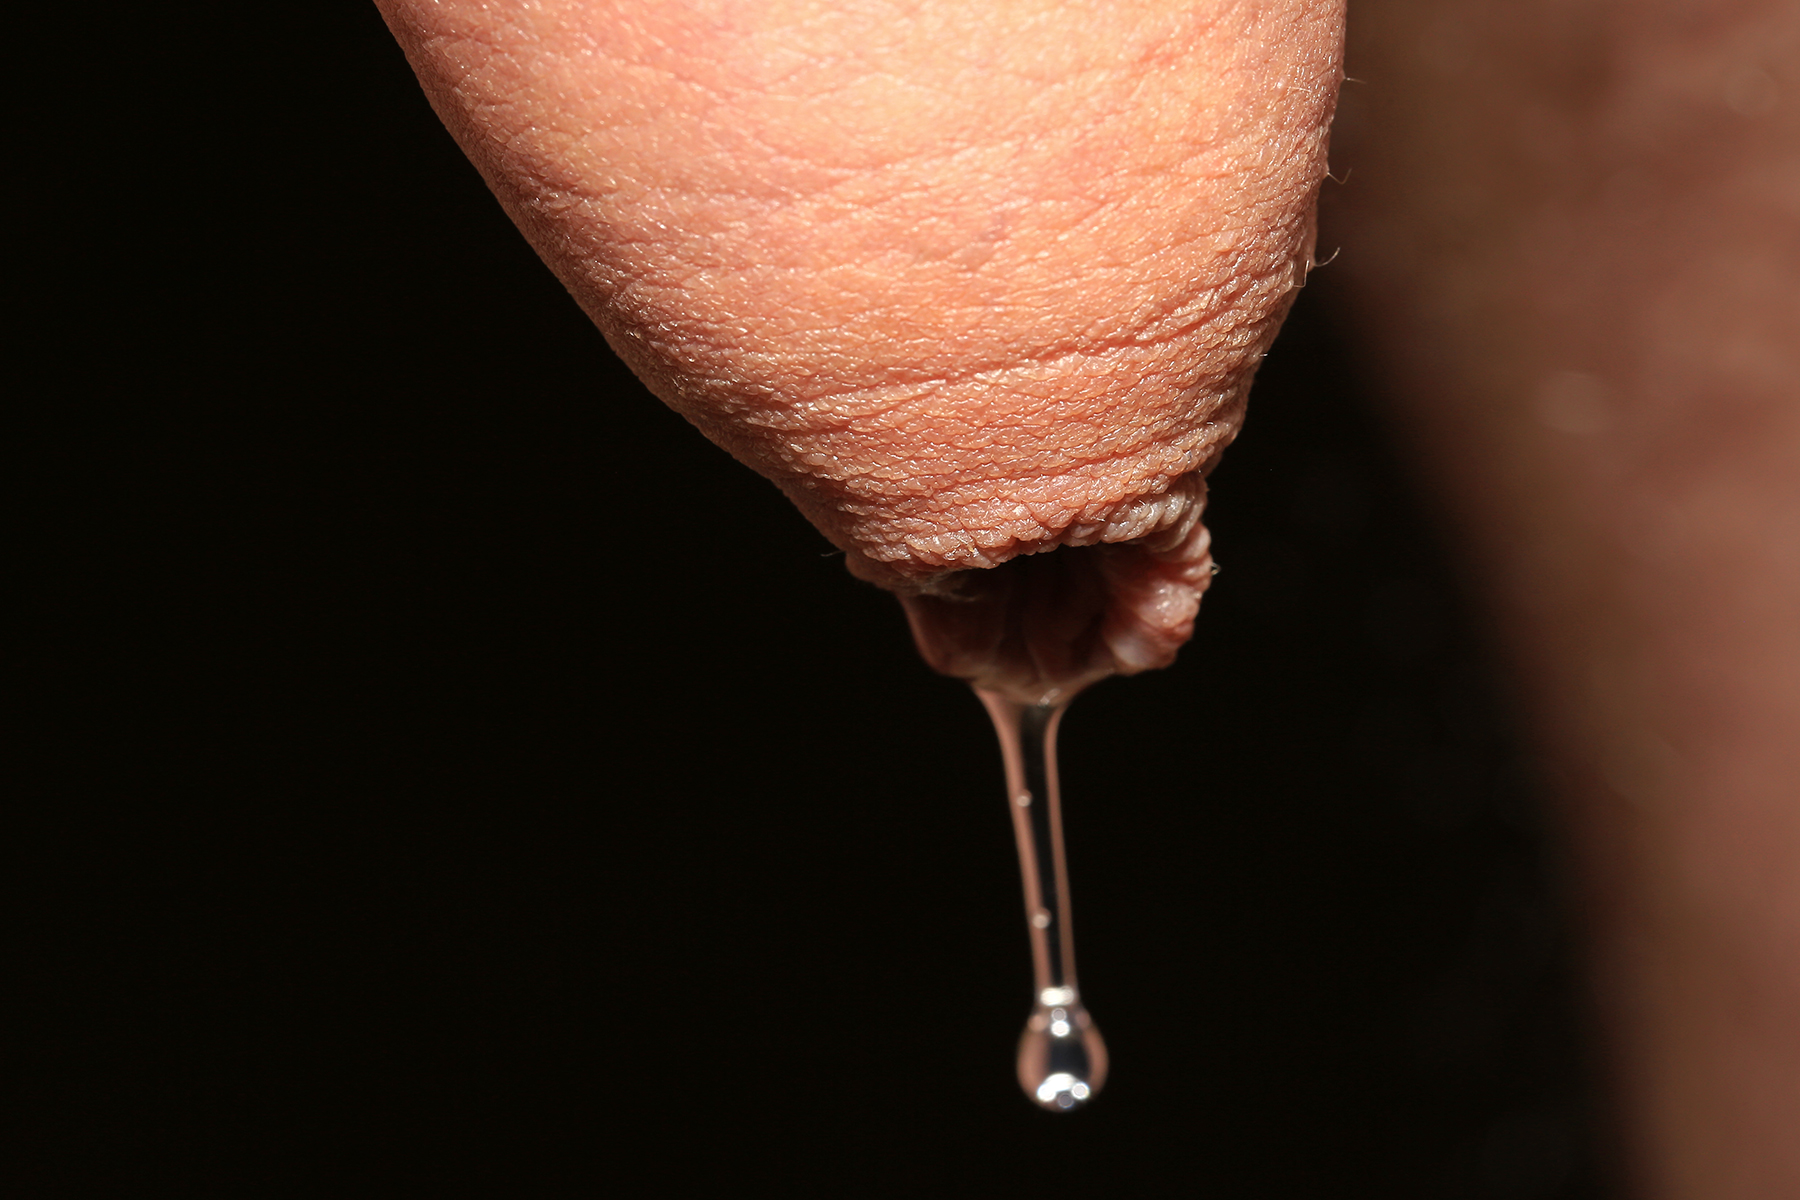 100 Images of Dripping Penis Pics